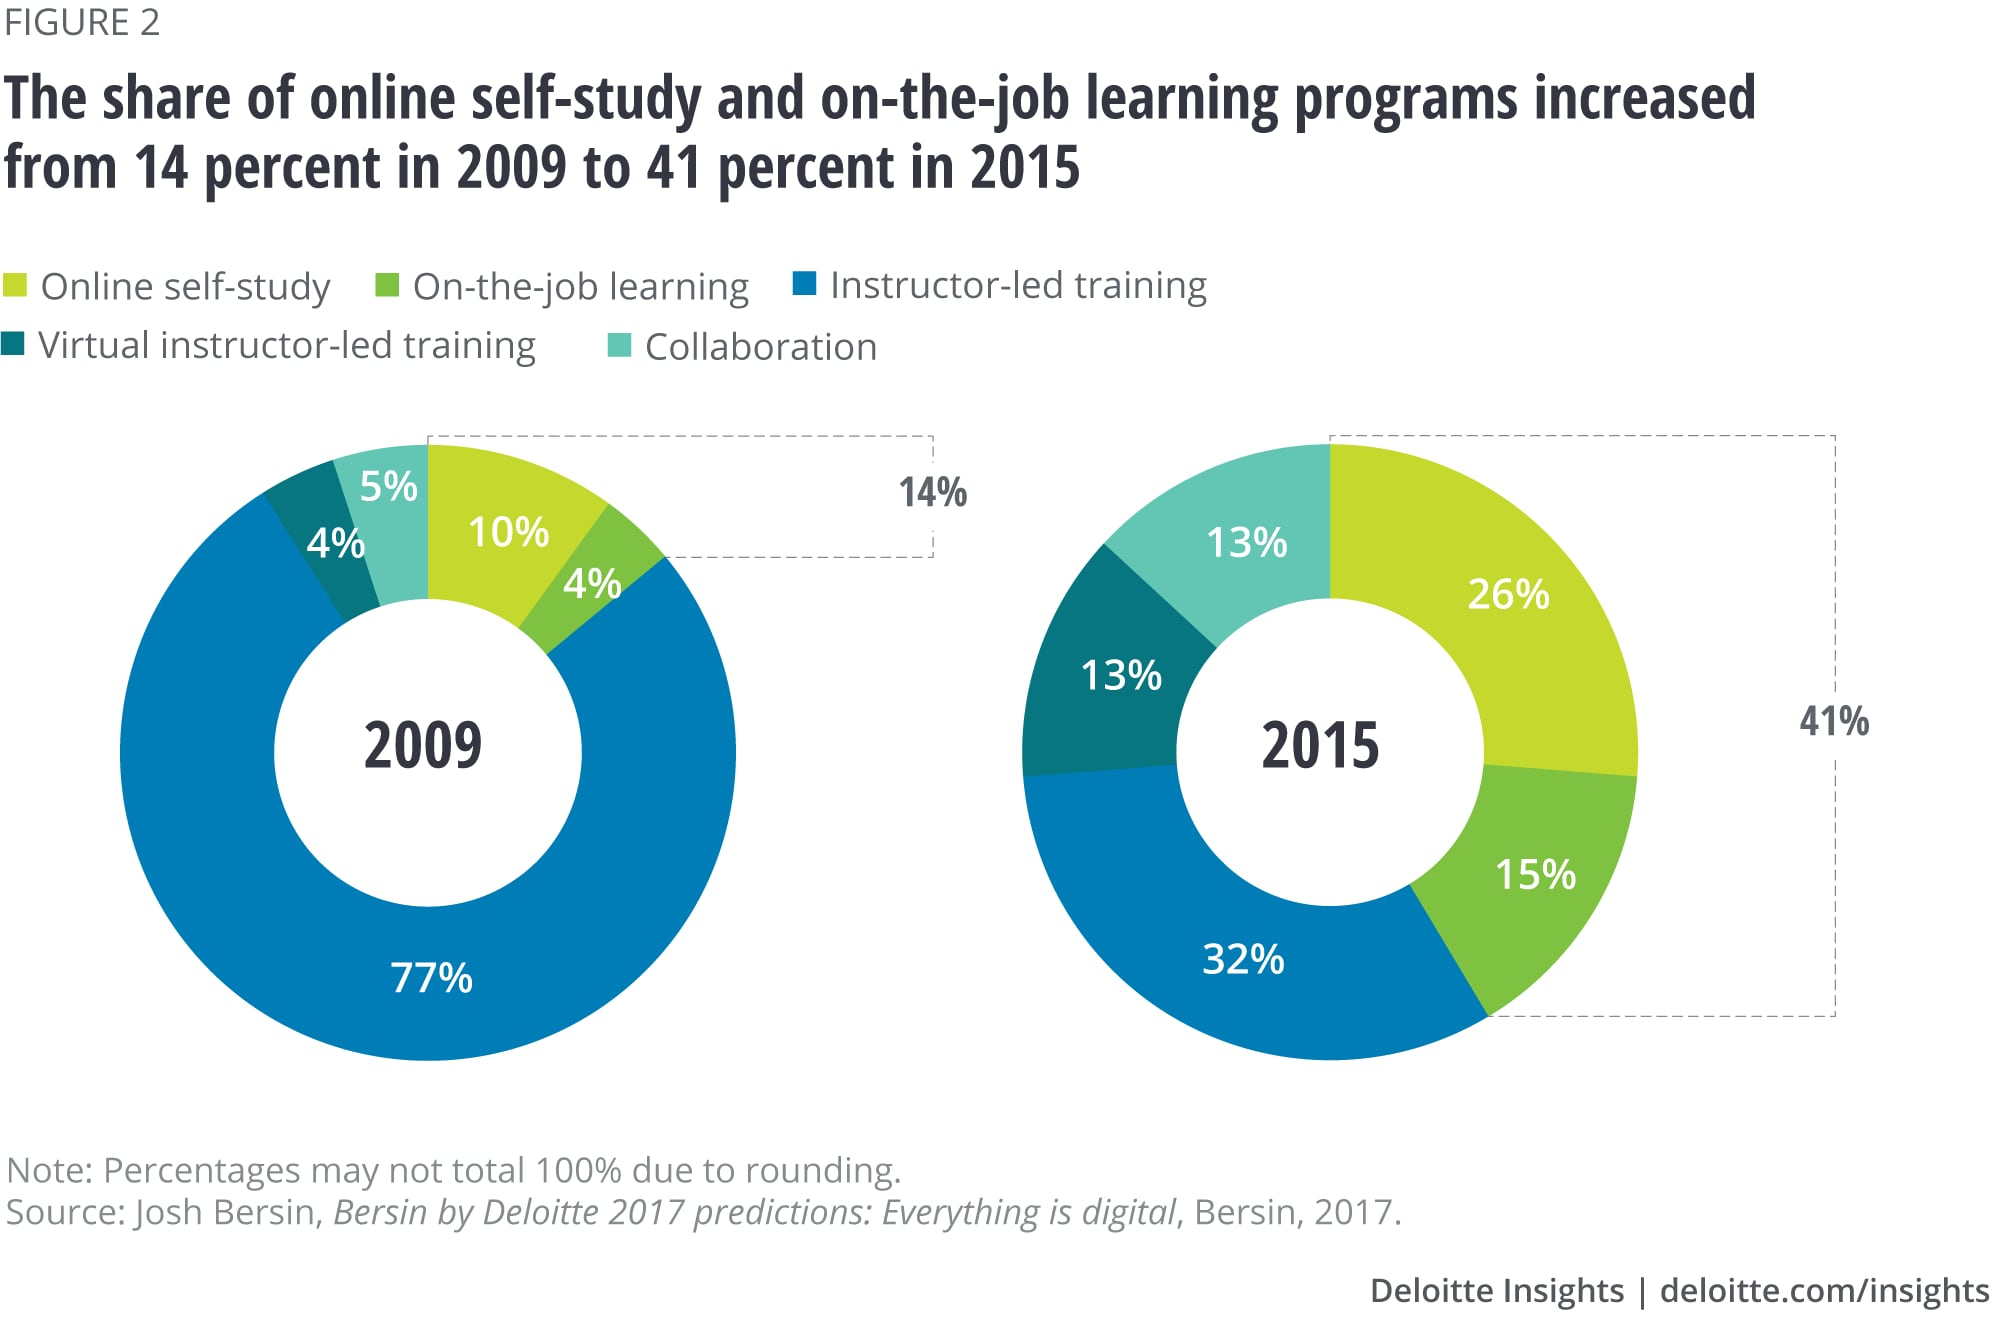 The share of online self-study and on-the-job learning programs increased from 14 percent in 2009 to 41 percent in 2015